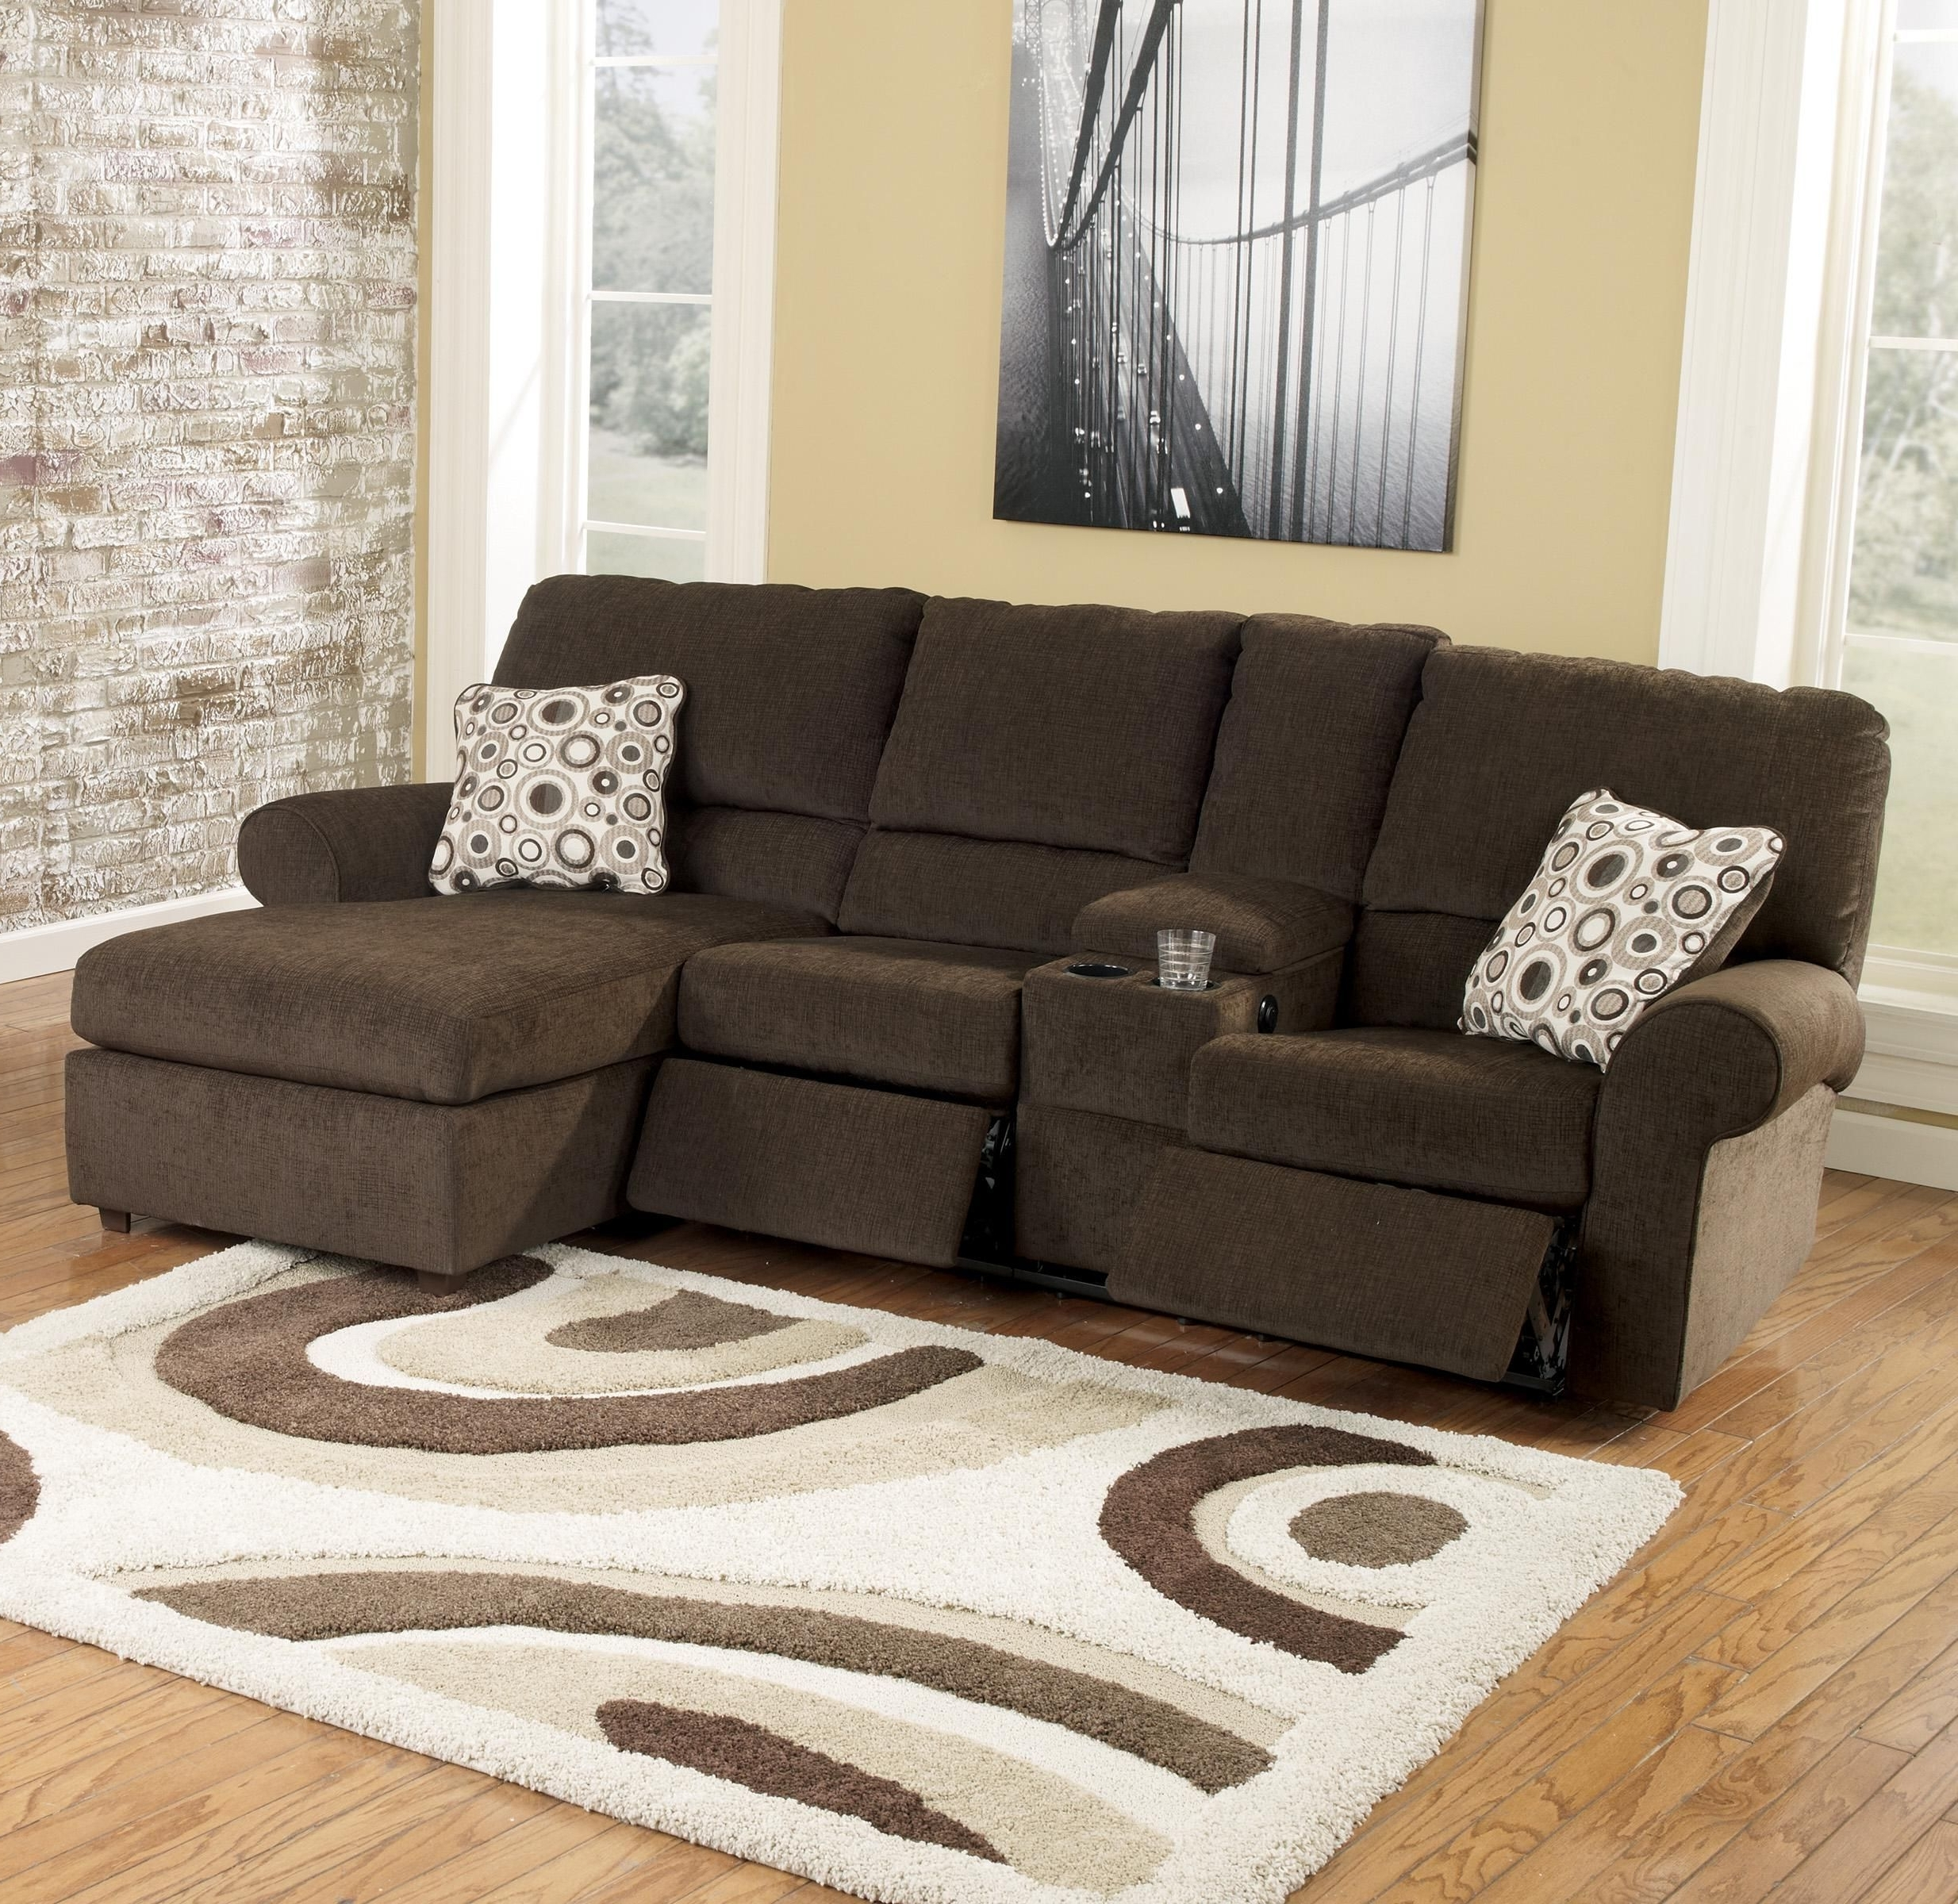 Cybertrack – Chocolate Power Reclining Sectionalsignature For Well Liked Sofas With Back Consoles (View 5 of 20)